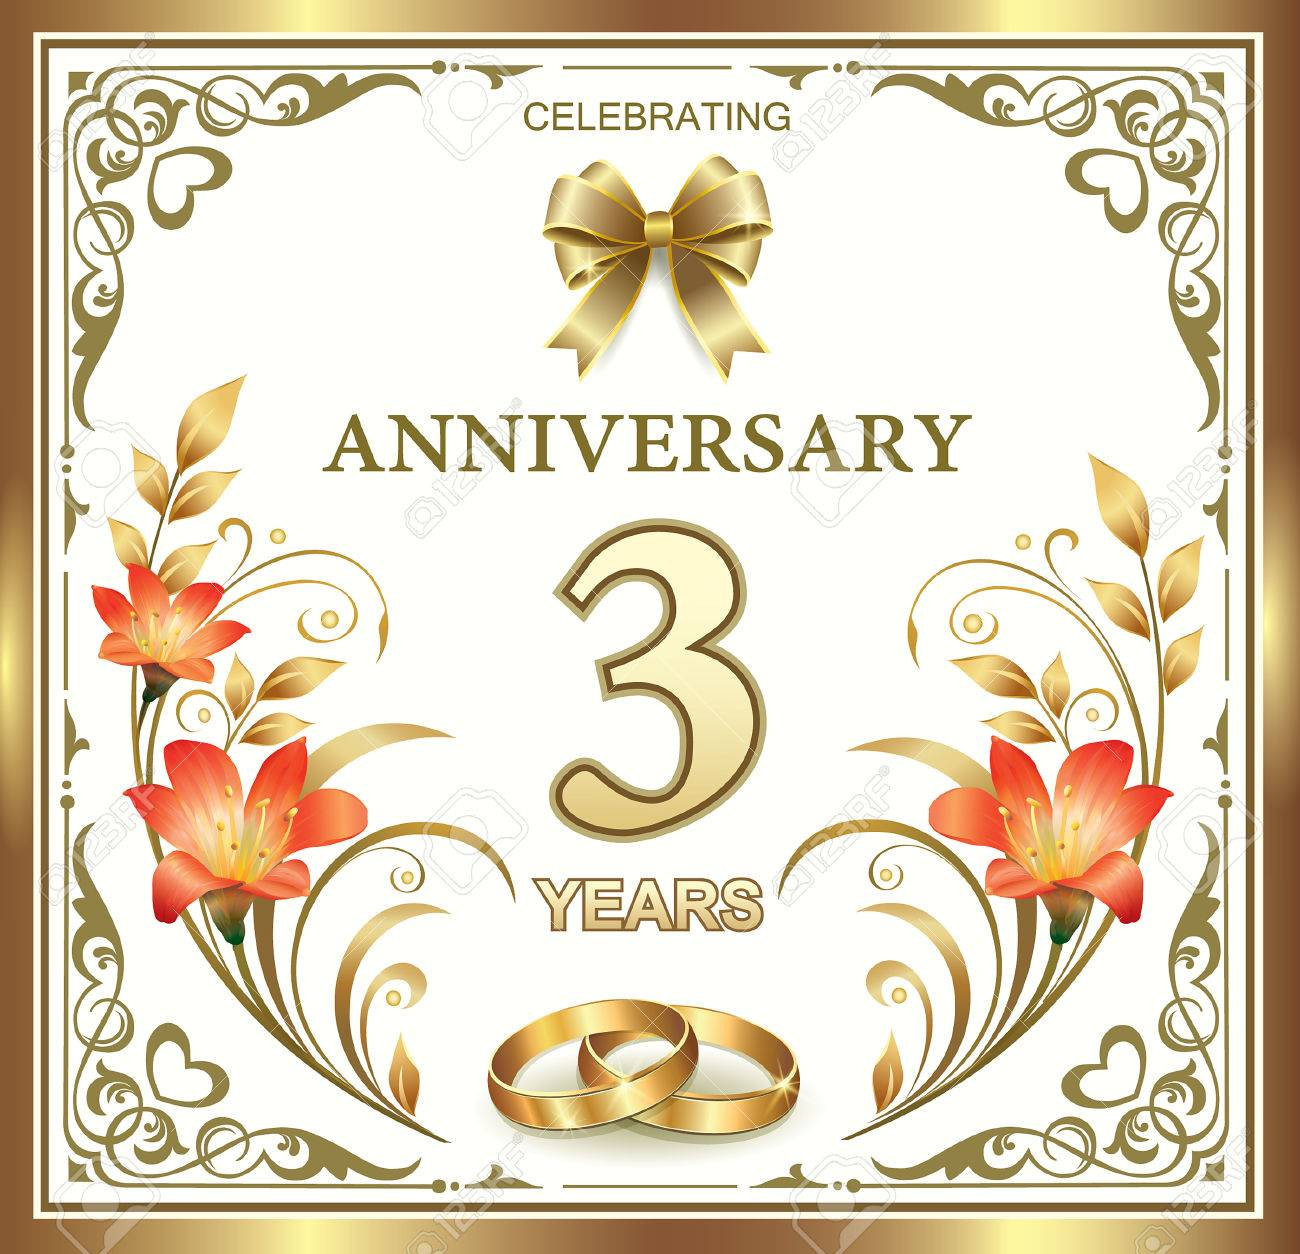 3 Wedding Anniversary In A Gold Frame Royalty Free Cliparts Vectors And Stock Illustration Image 42856531